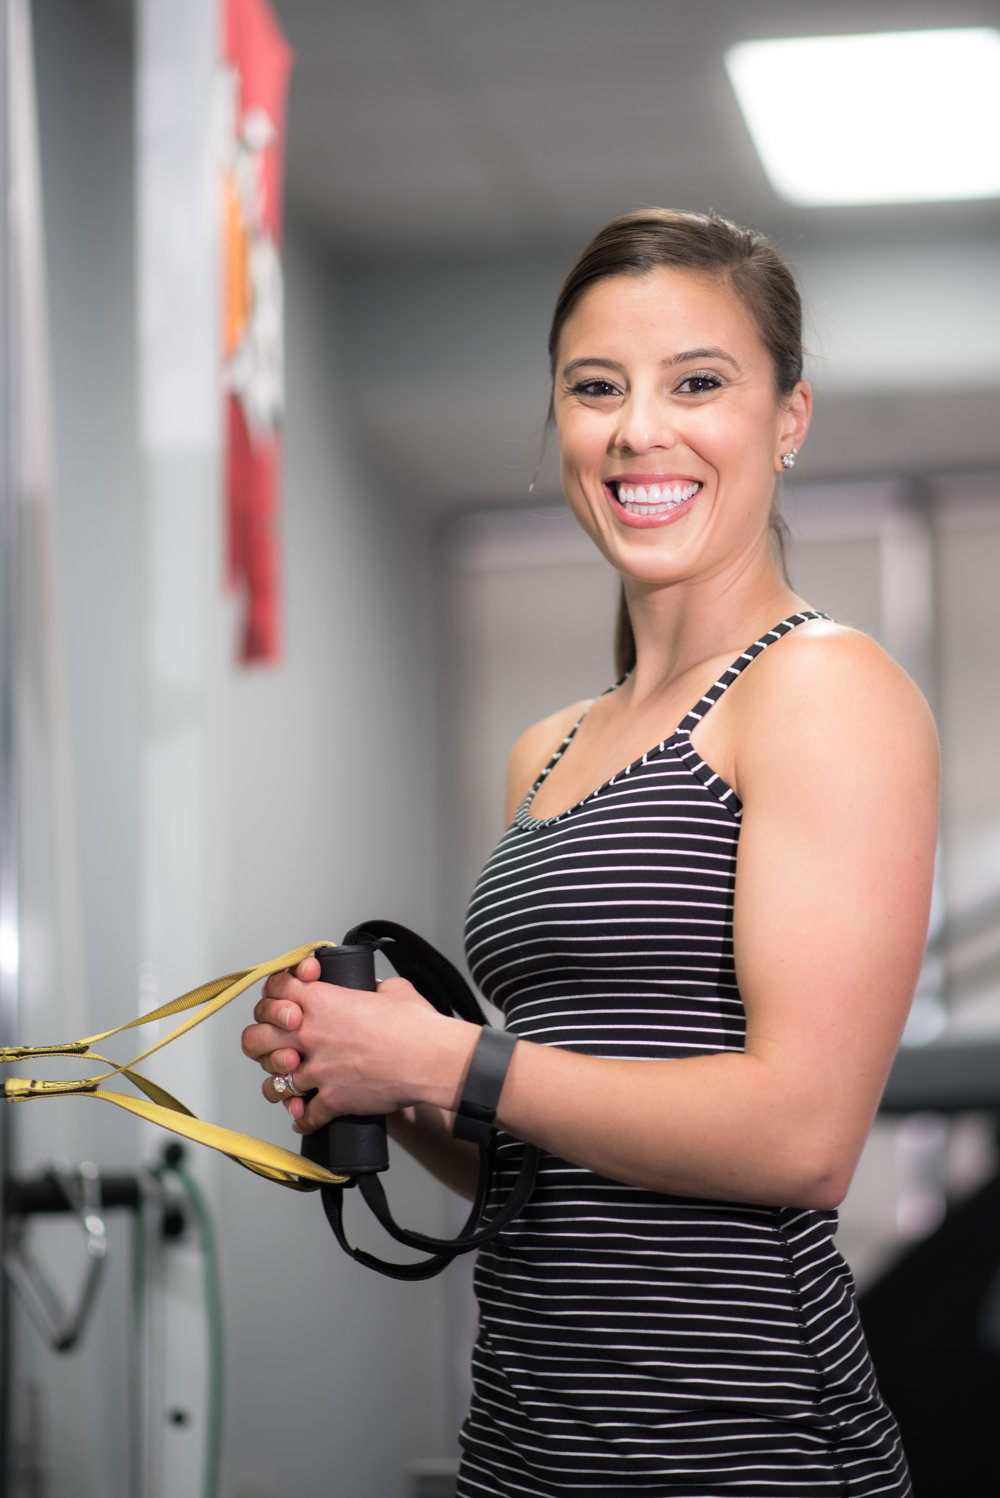 Lower Body TRX HIIT Workout